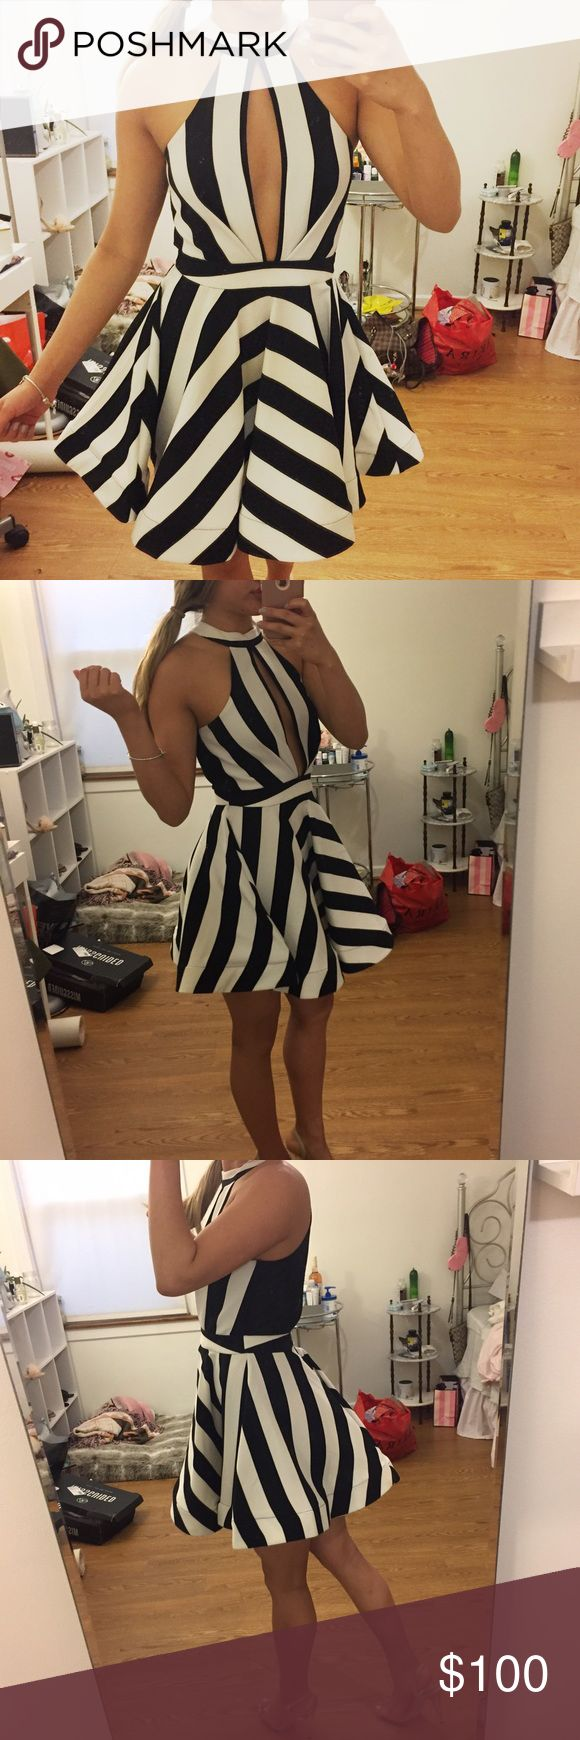 Black and White Stripped cocktail formal dress Amazing condition never worn bought from a boutique in South Beach Miami. No brand. This dress is fabulous and beautiful. I just never had anywhere to wear it ever. BCBG Dresses Midi